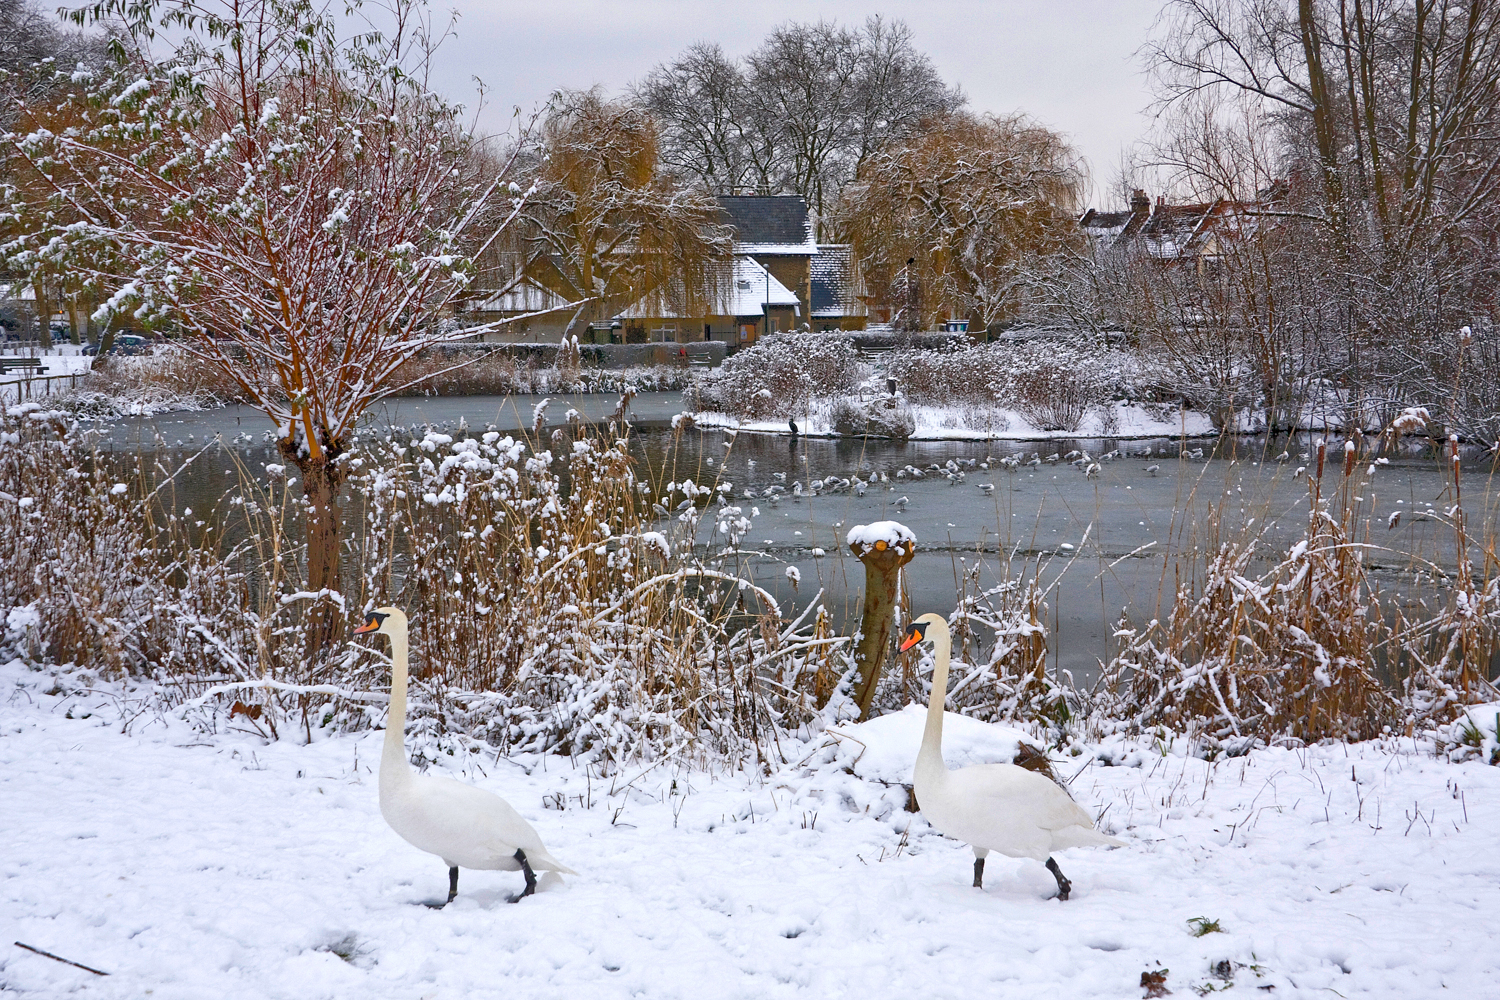 Barnes+Pond+in+the+Snow+5+2.jpg